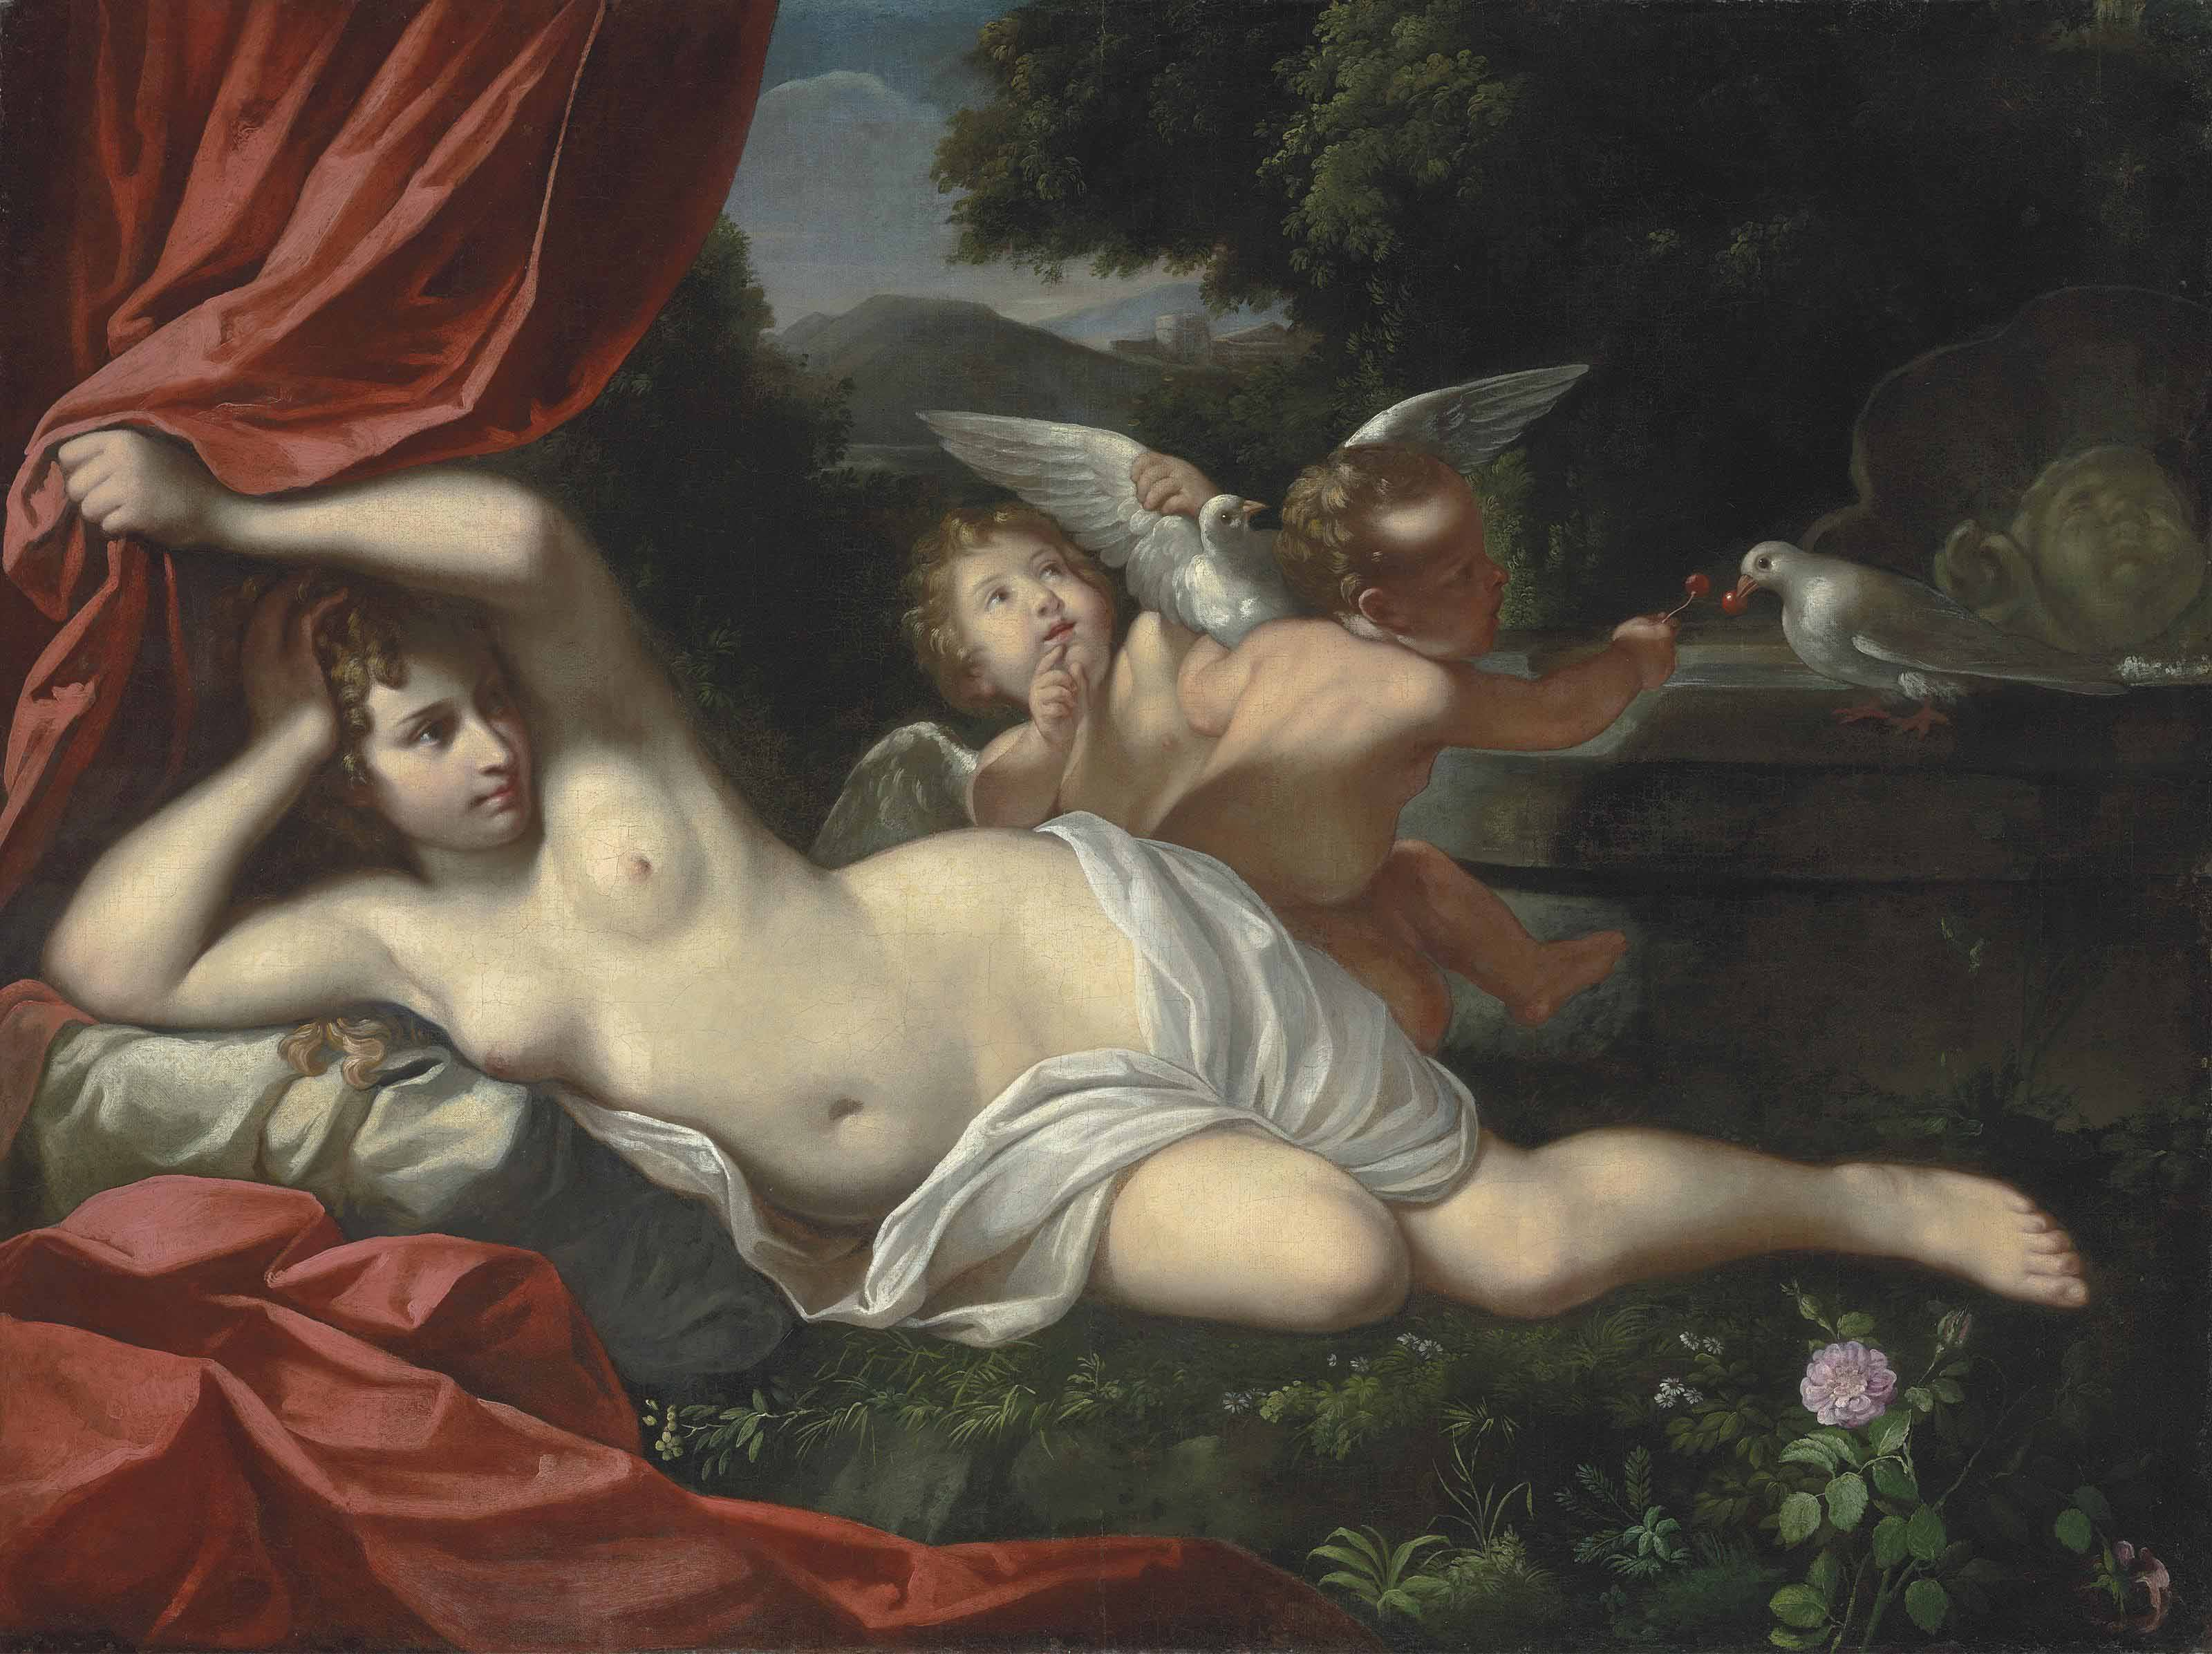 Venus reclining with a putto and an infant playing with doves, an Italianate landscape beyond